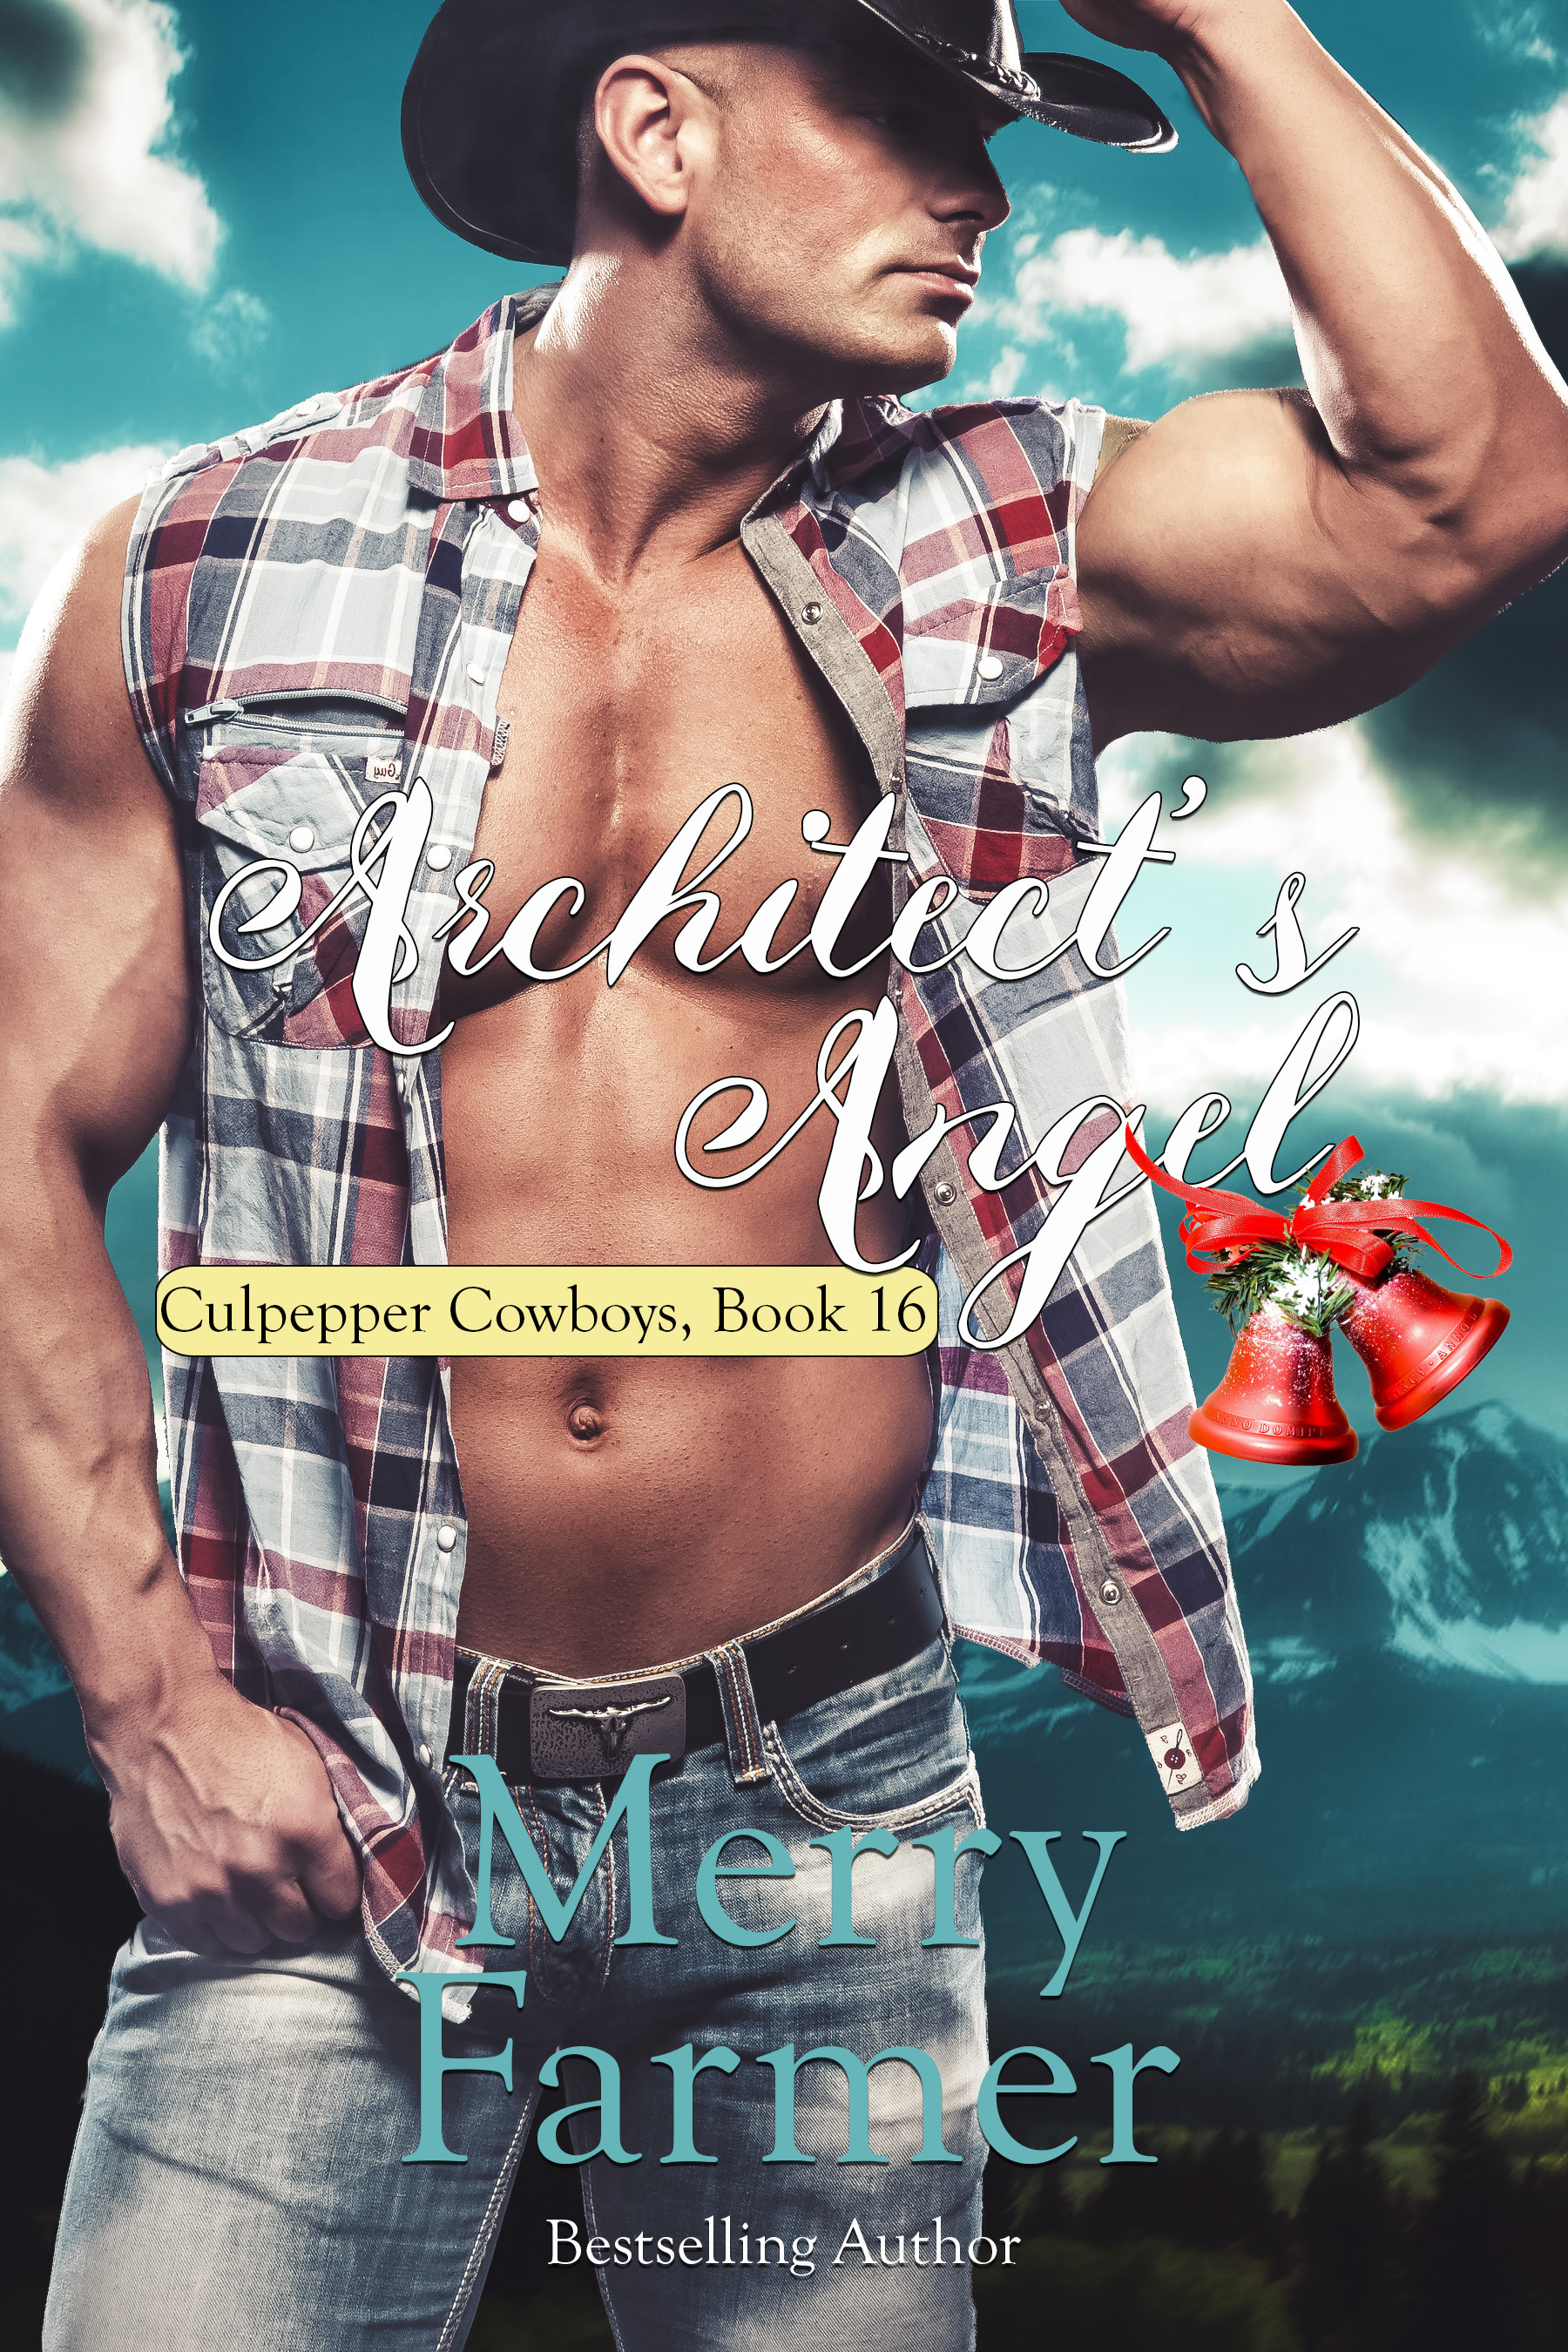 Architect's Angel (Book 16) - Tabby Ross and Arch O'Donnell were the perfect couple the summer before their senior year of high school. But when they both ran for senior class president, their romance fell apart. From that point on, the two of them developed an epic rivalry, playing pranks on each other and pitting them against each other on every level.Some things never change…Fifteen years later, both Tabby and Arch are back in Culpepper, and their rivalry burns as hot as ever. The pranks keep on coming—some of them a little more dangerous than they should be. But when the tables are turned on the passionate rivals, it's their turn to join forces to play the ultimate prank. Only, in the end, the joke might just be on them. Christmas and New Year's may turn out to be the perfect way for two enemies to become lifelong lovers.PLEASE BE ADVISED – Steam level - Hot